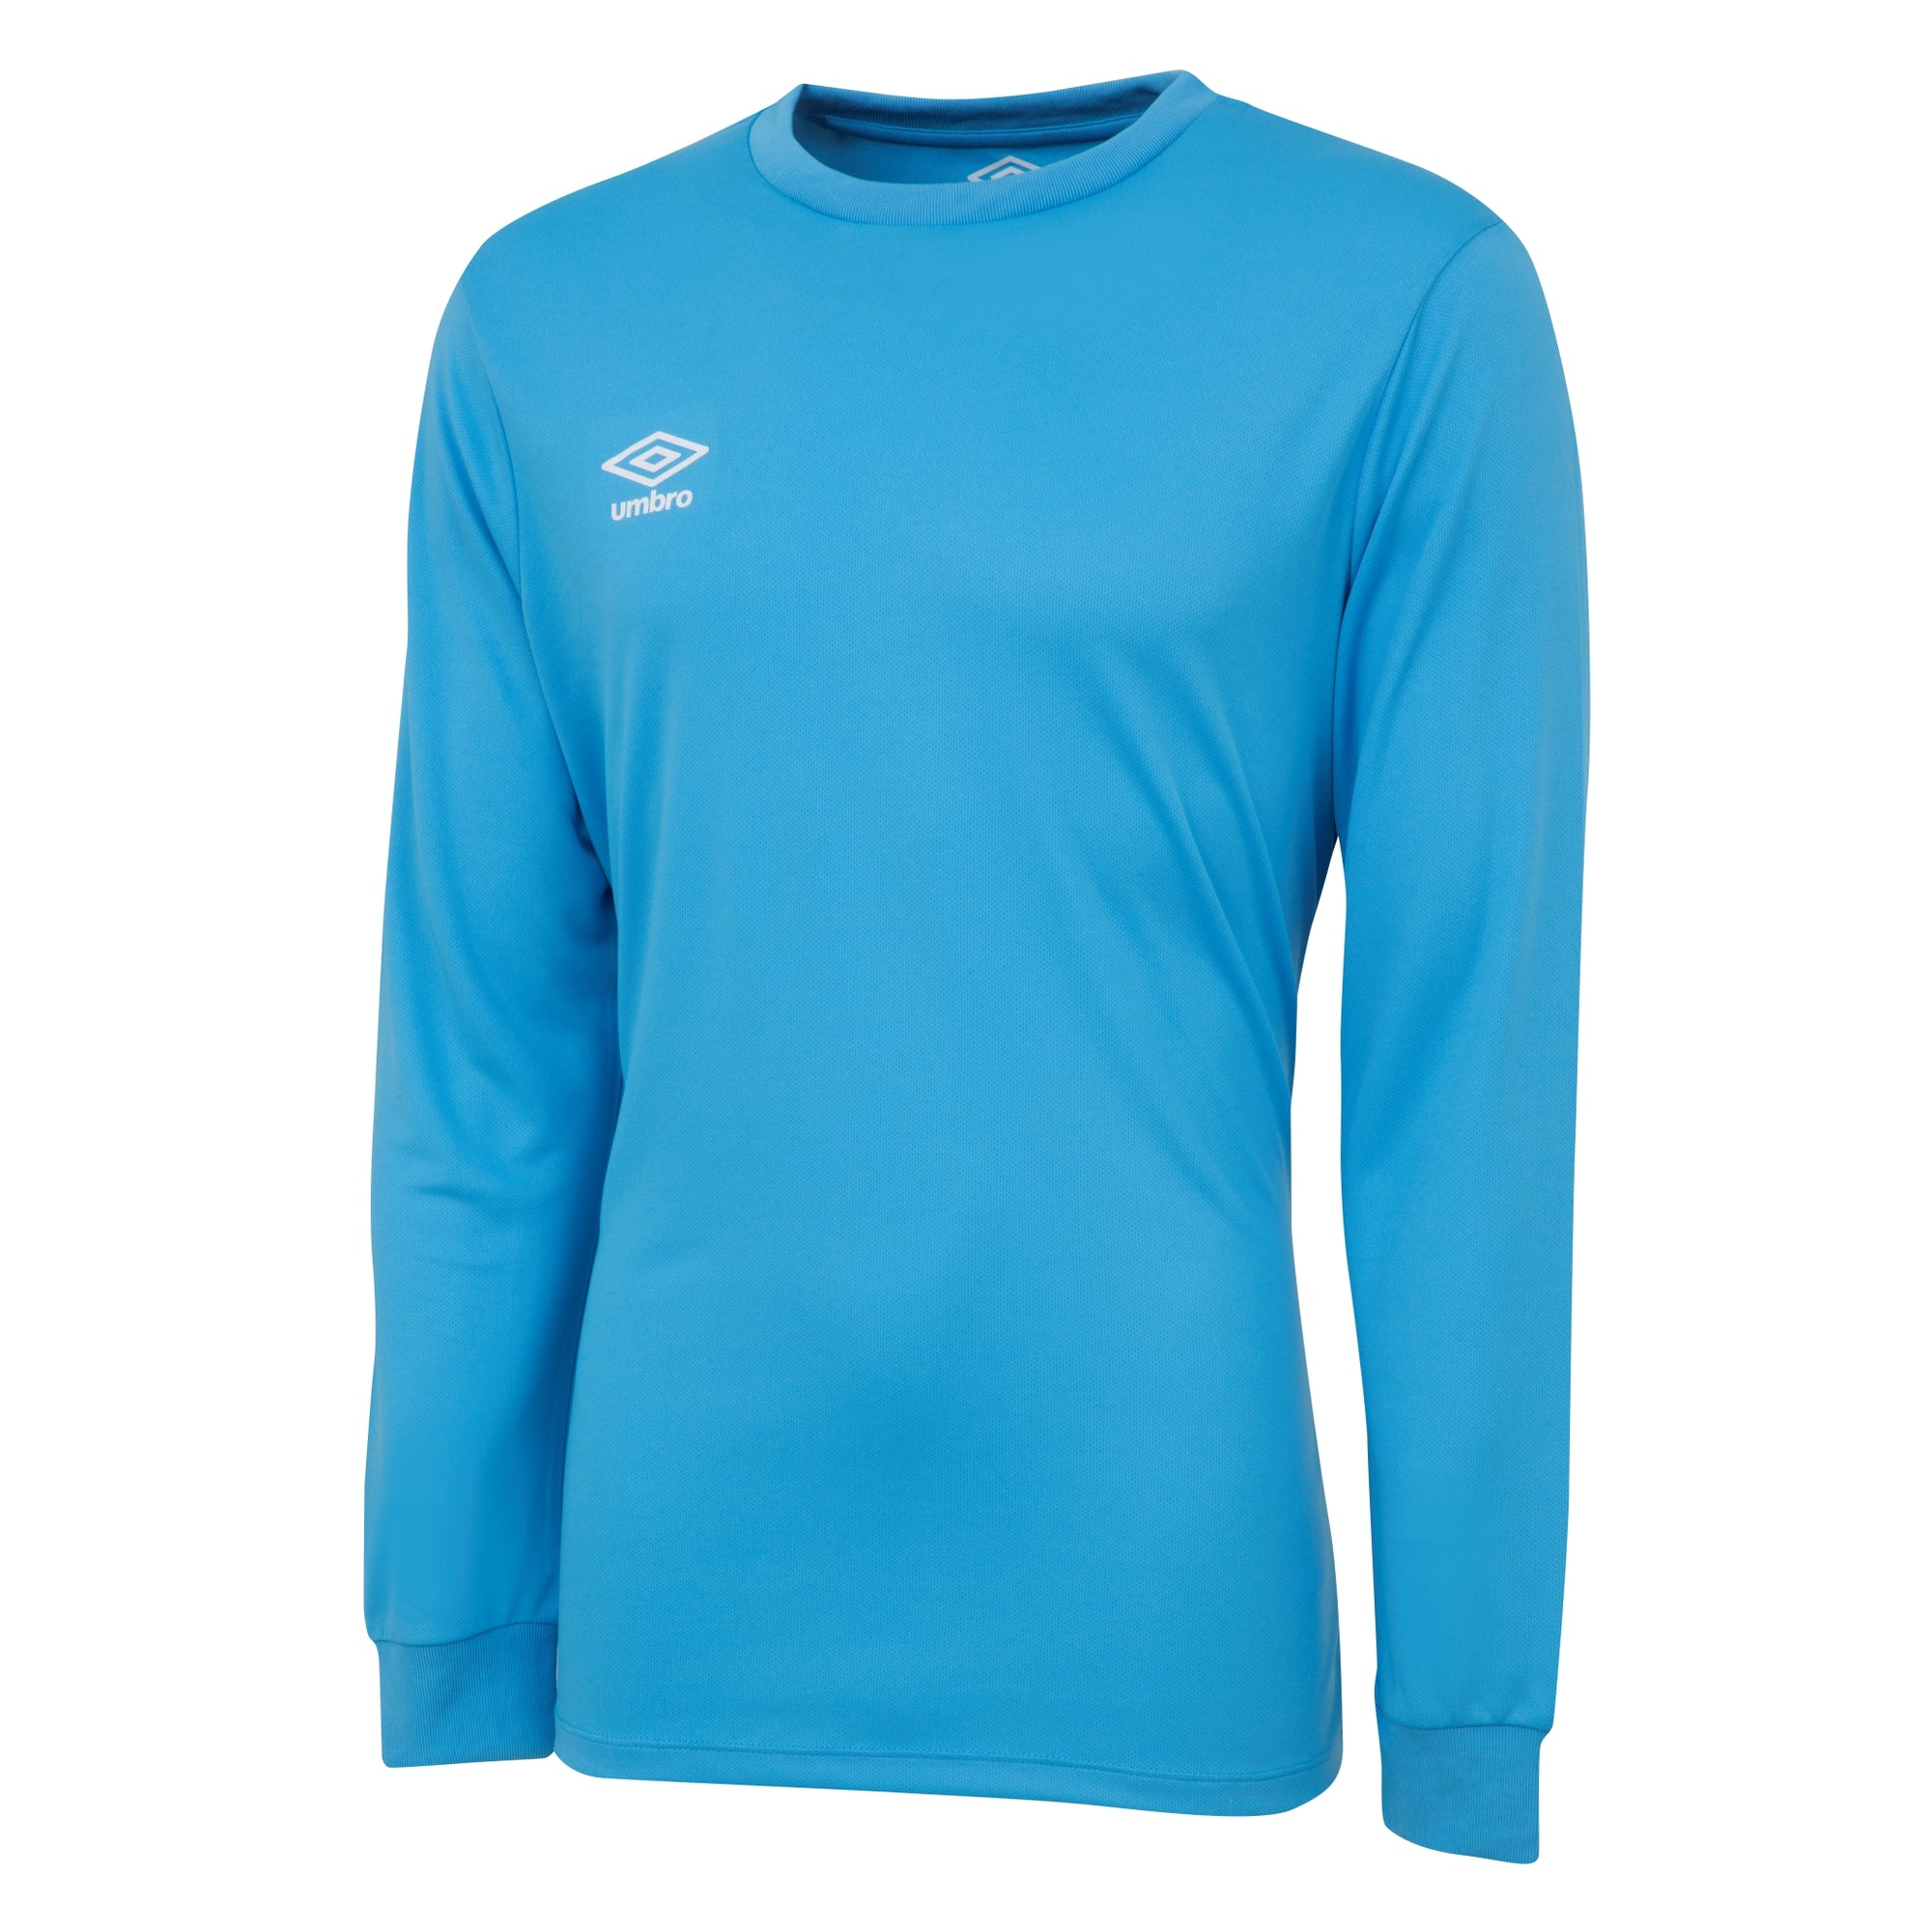 Umbro long sleeve club jersey in sky blue with white printed Umbro logo